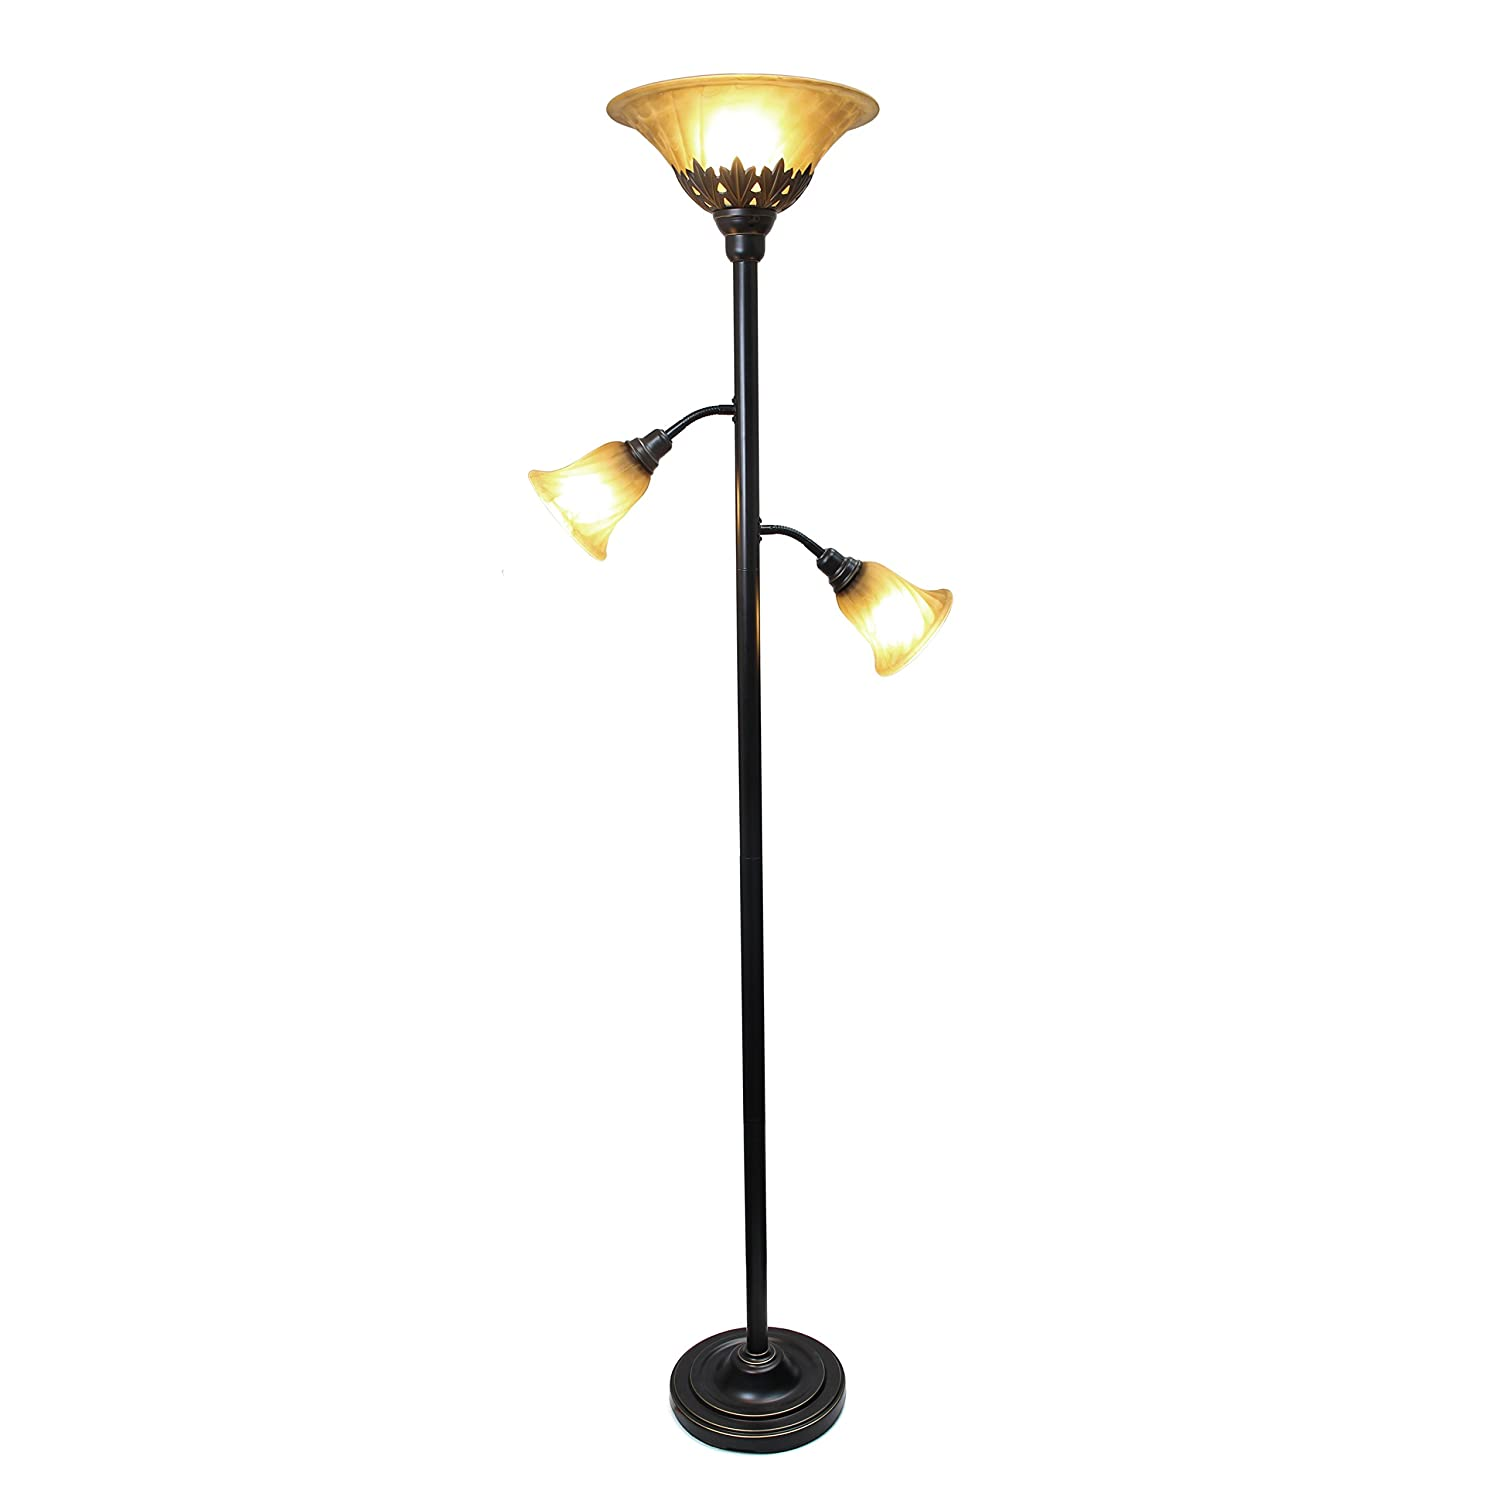 Elegant Designs LF2002-RBZ 3 Light Floor Lamp with Scalloped Glass Shades 3.9 Restoration Bronze